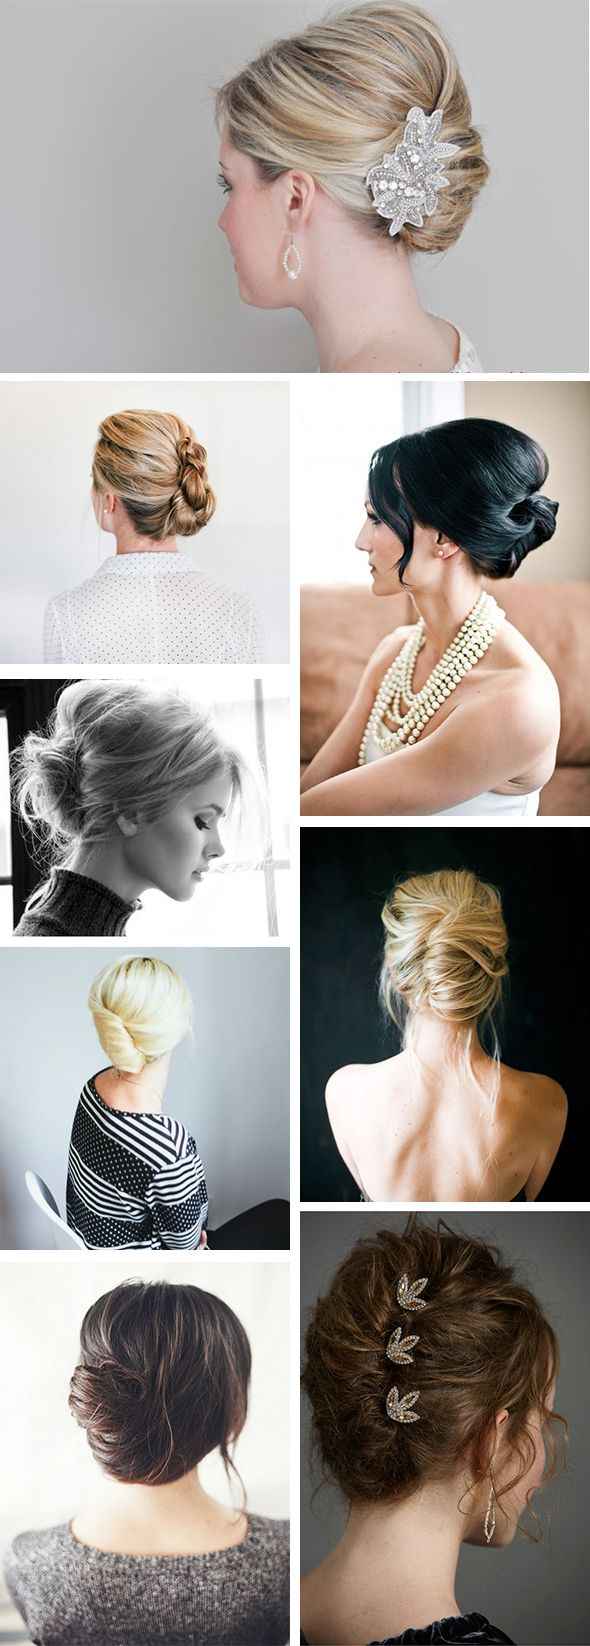 64 best bridal hairstyles images on pinterest | hairstyles, braids